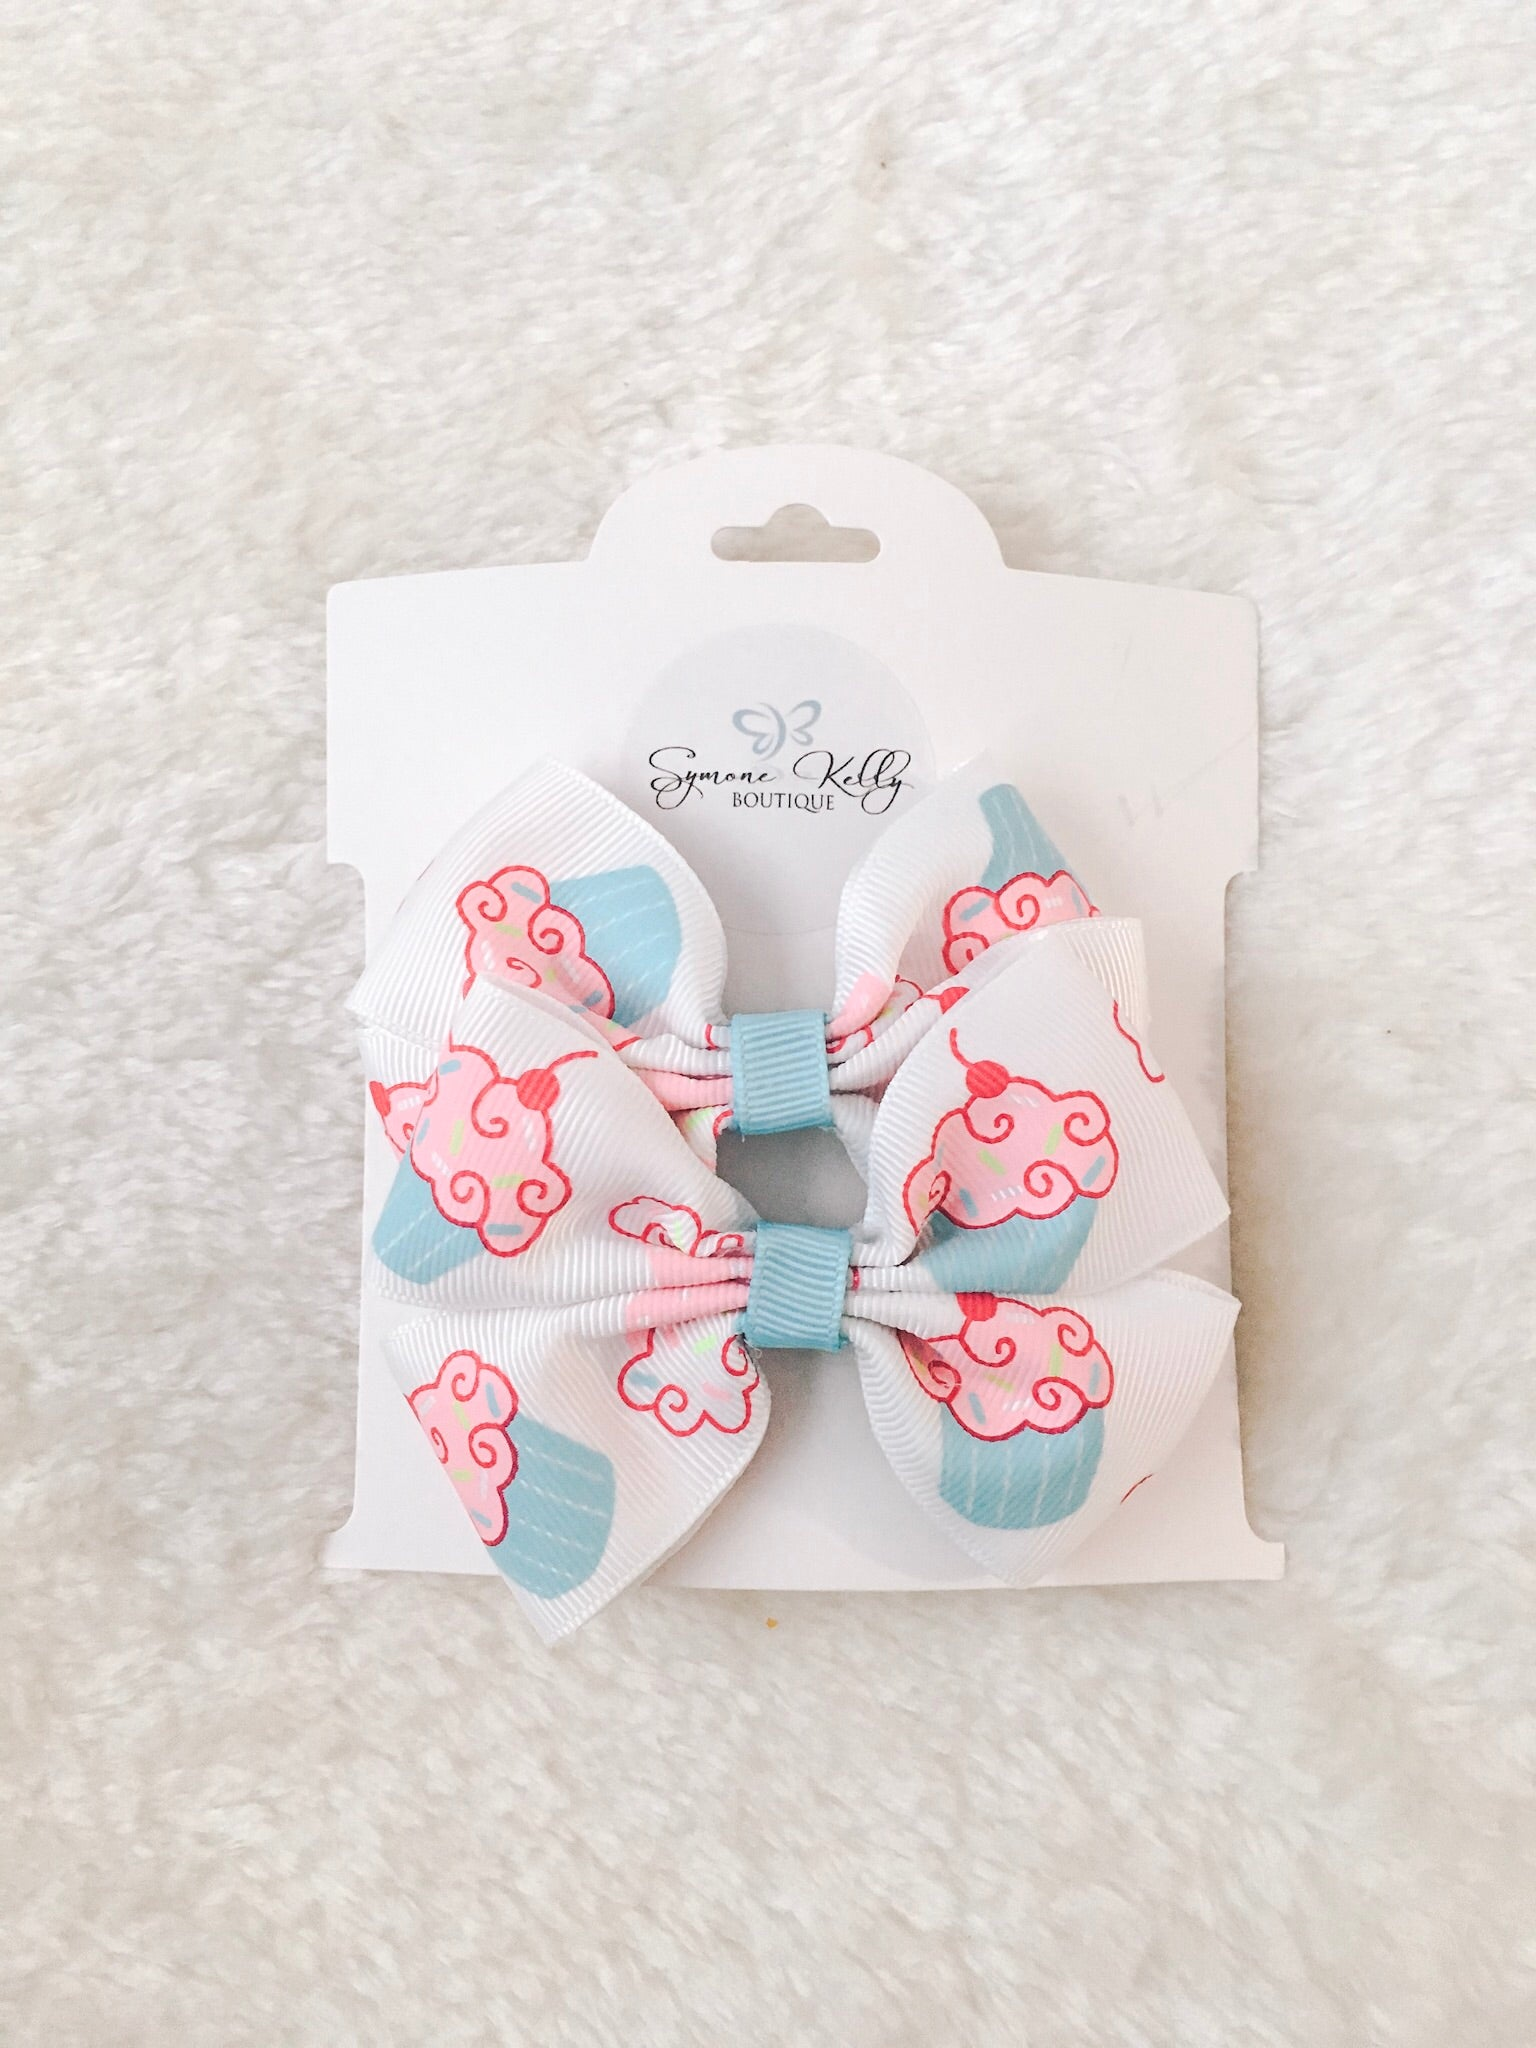 PINK CUPCAKE BOUTIQUE BOWS